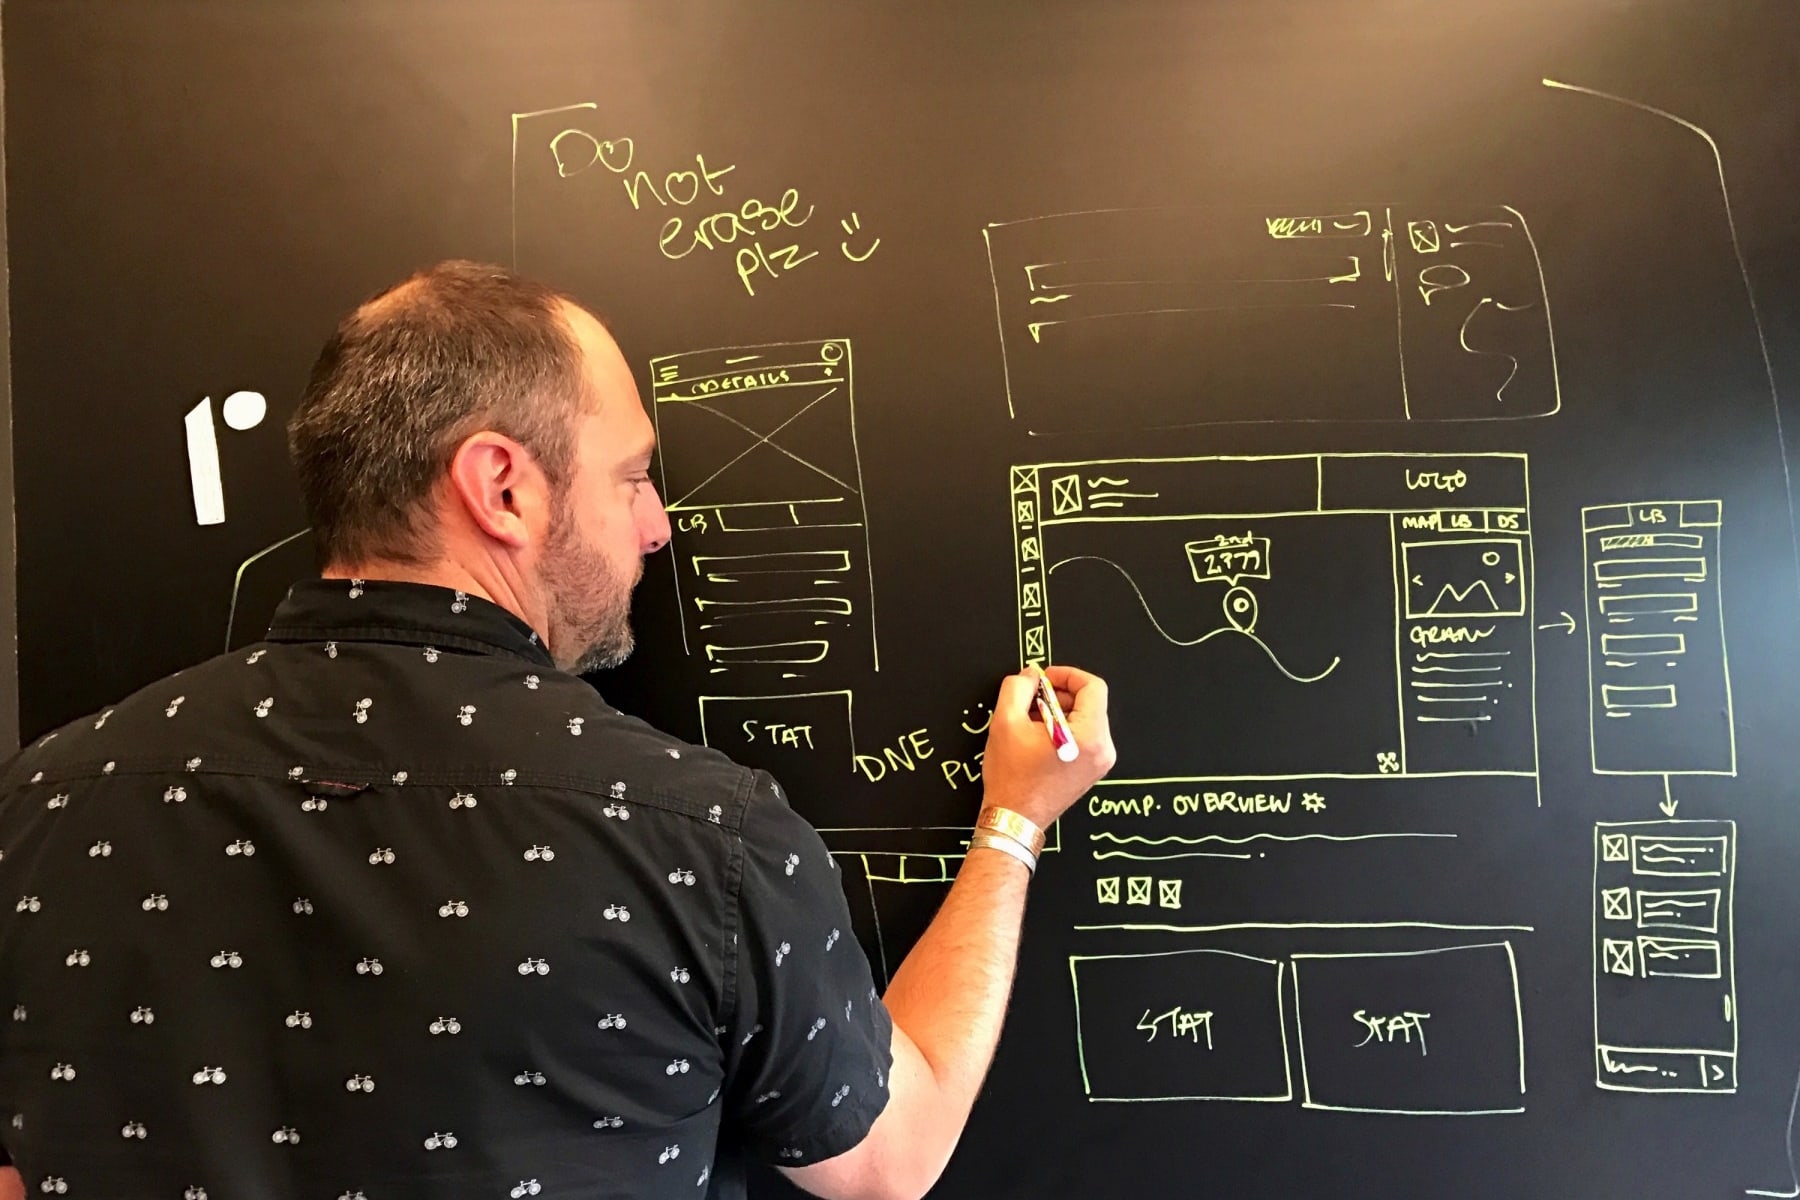 John Gentle creating wireframes on a blackboard in a creative session